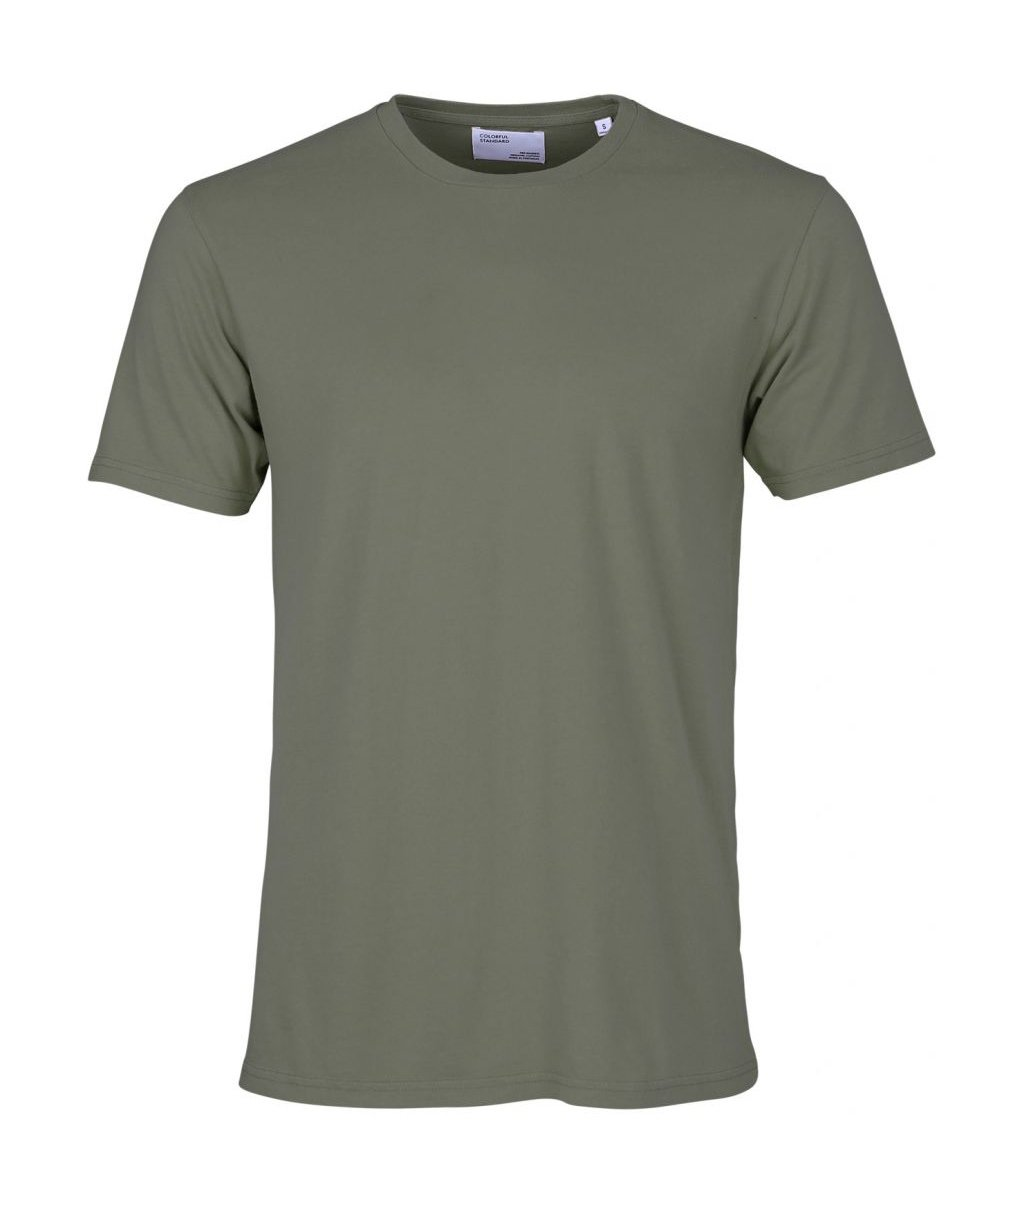 Colorful Standard COLORFUL STANDARD classic organic cotton tee shirt round neck dusty olive (unisex)